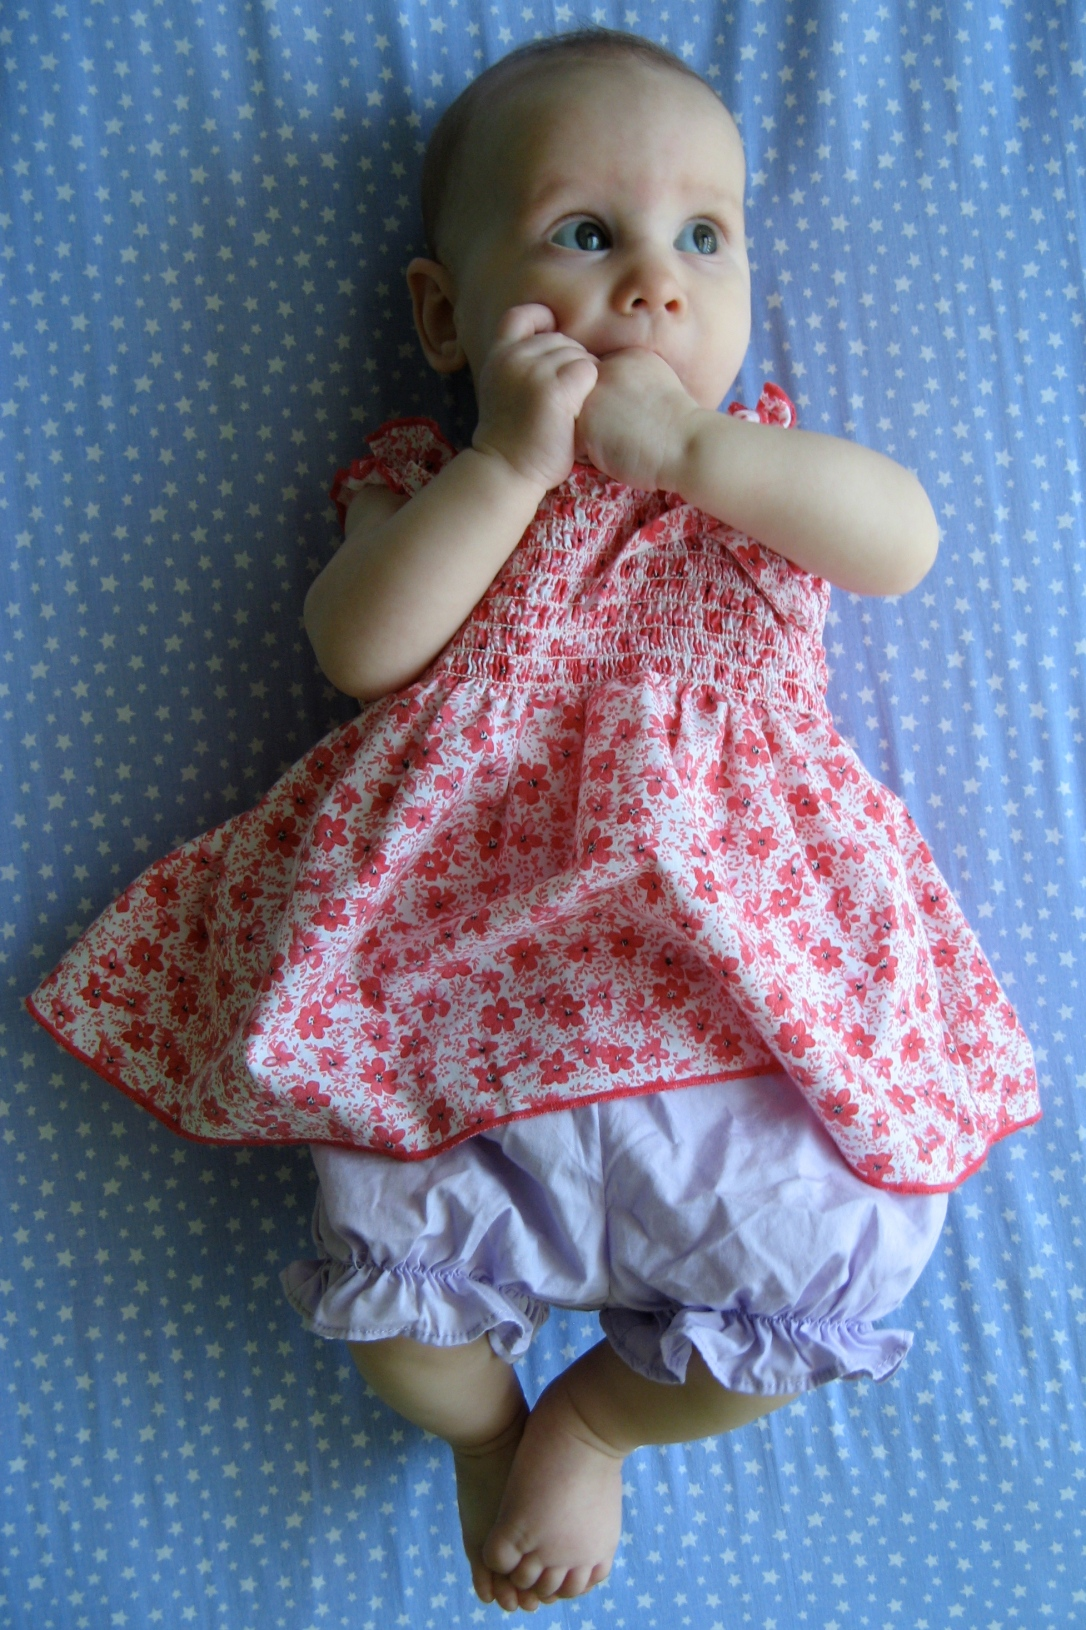 my beautiful baby girl wearing a pink calico dress and lavender bloomers, laying on periwinkle fabric